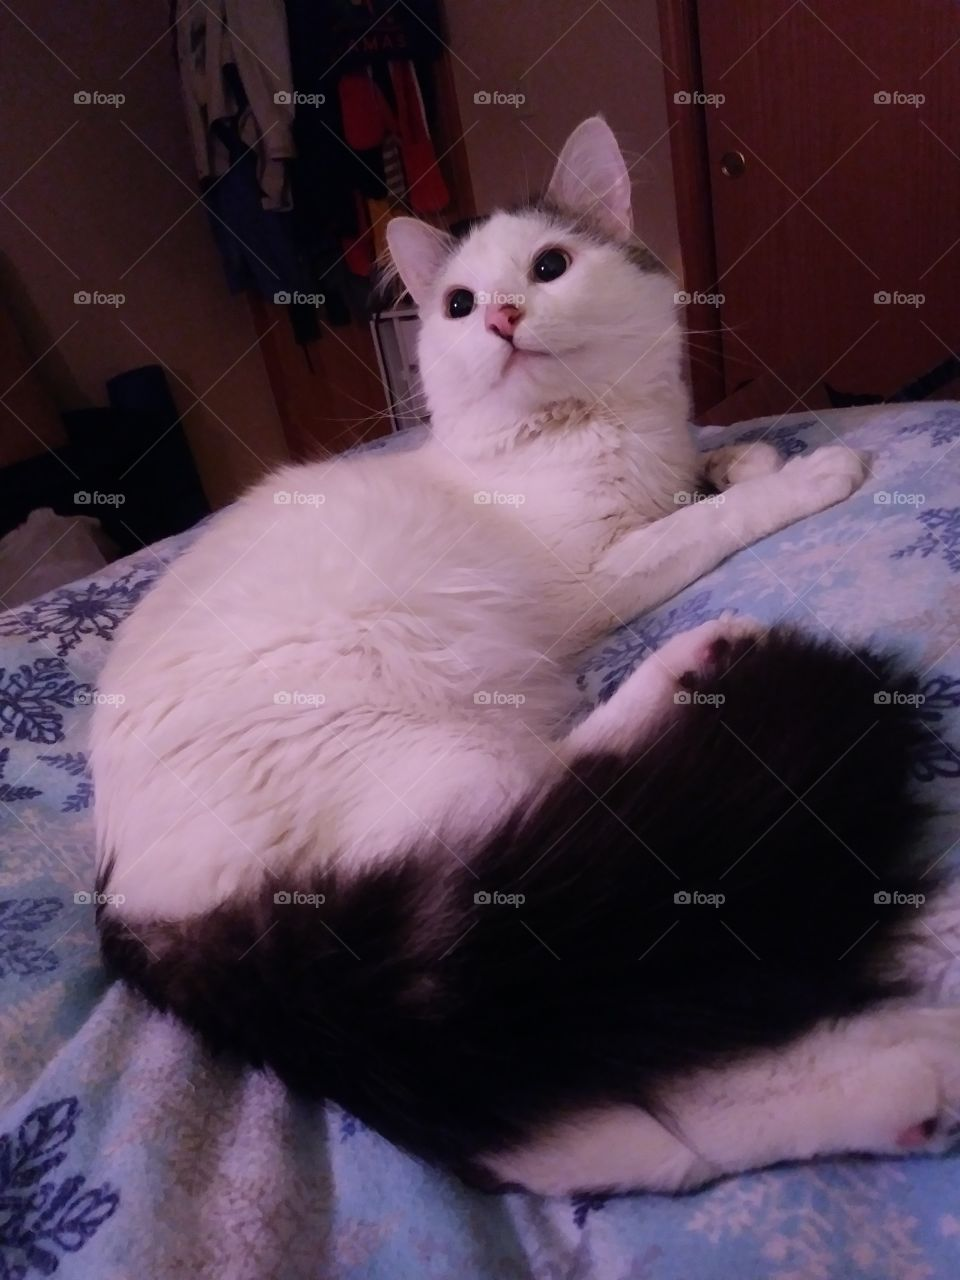 A handsome white cat named Cloud relaxing on a bed